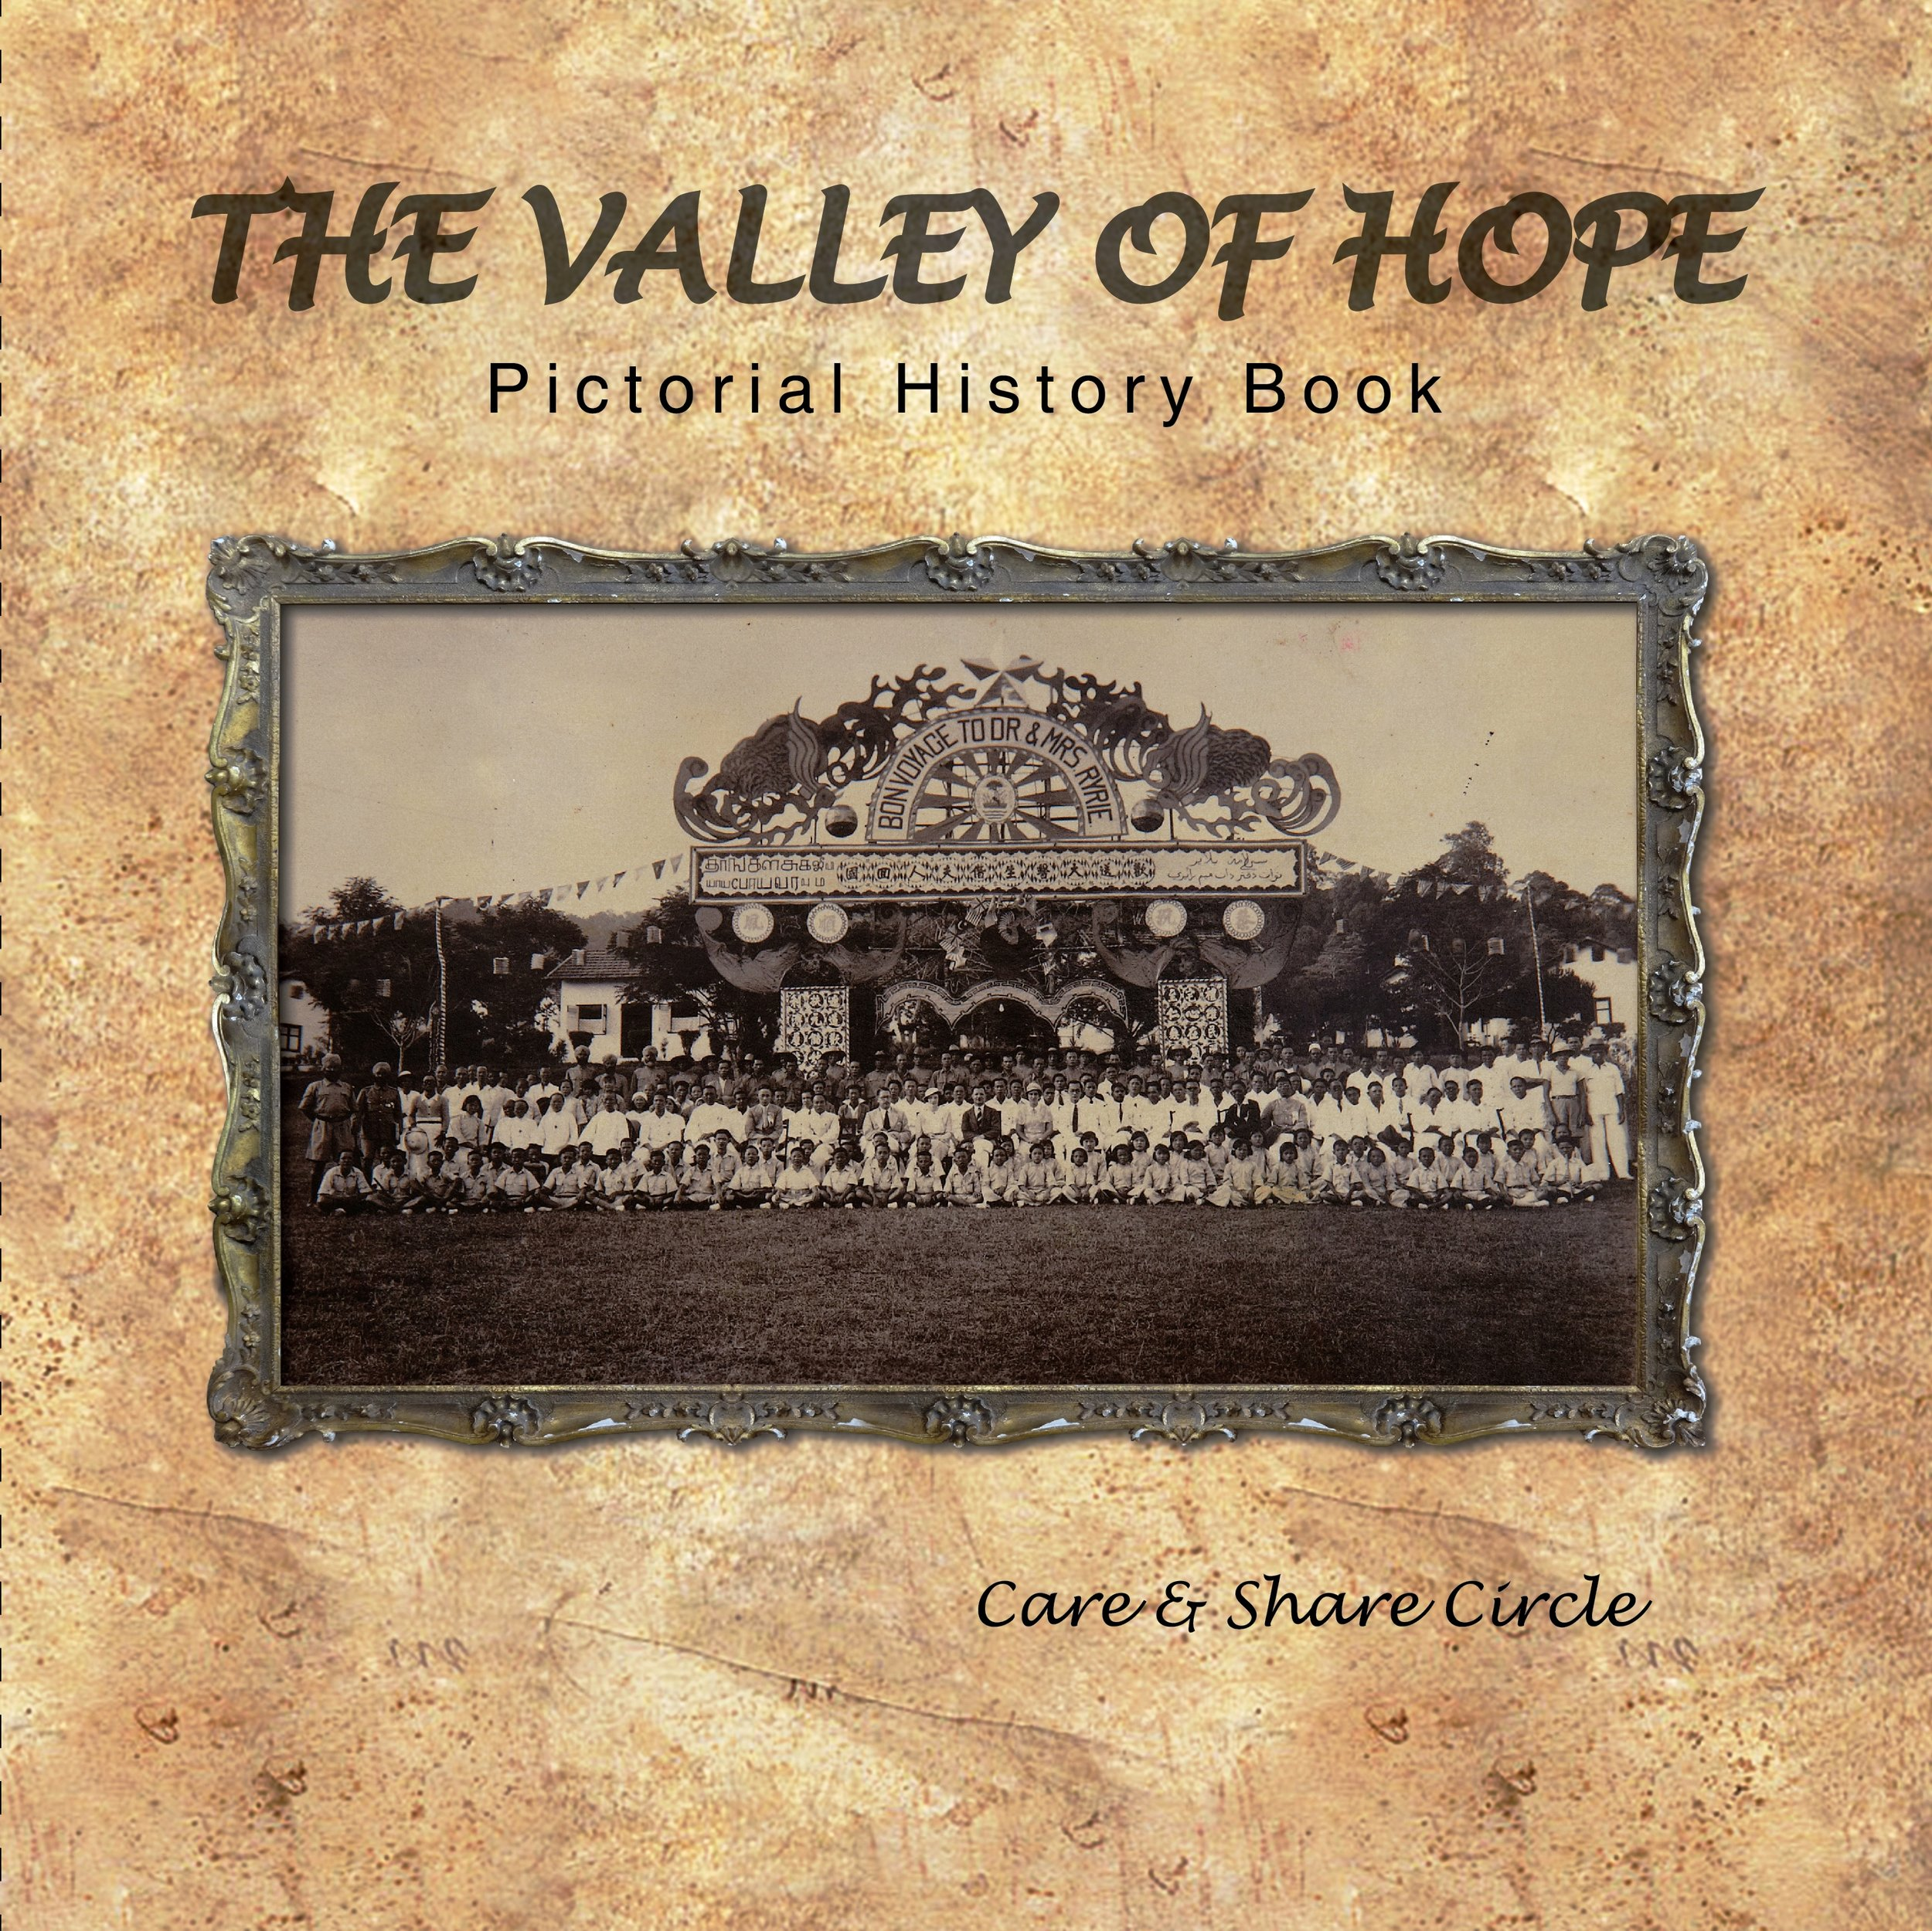 The Valley of Hope Pictorial History Book, English Edition, published by Care & Share Circle, 2015. (photo by Tan Ean Nee)